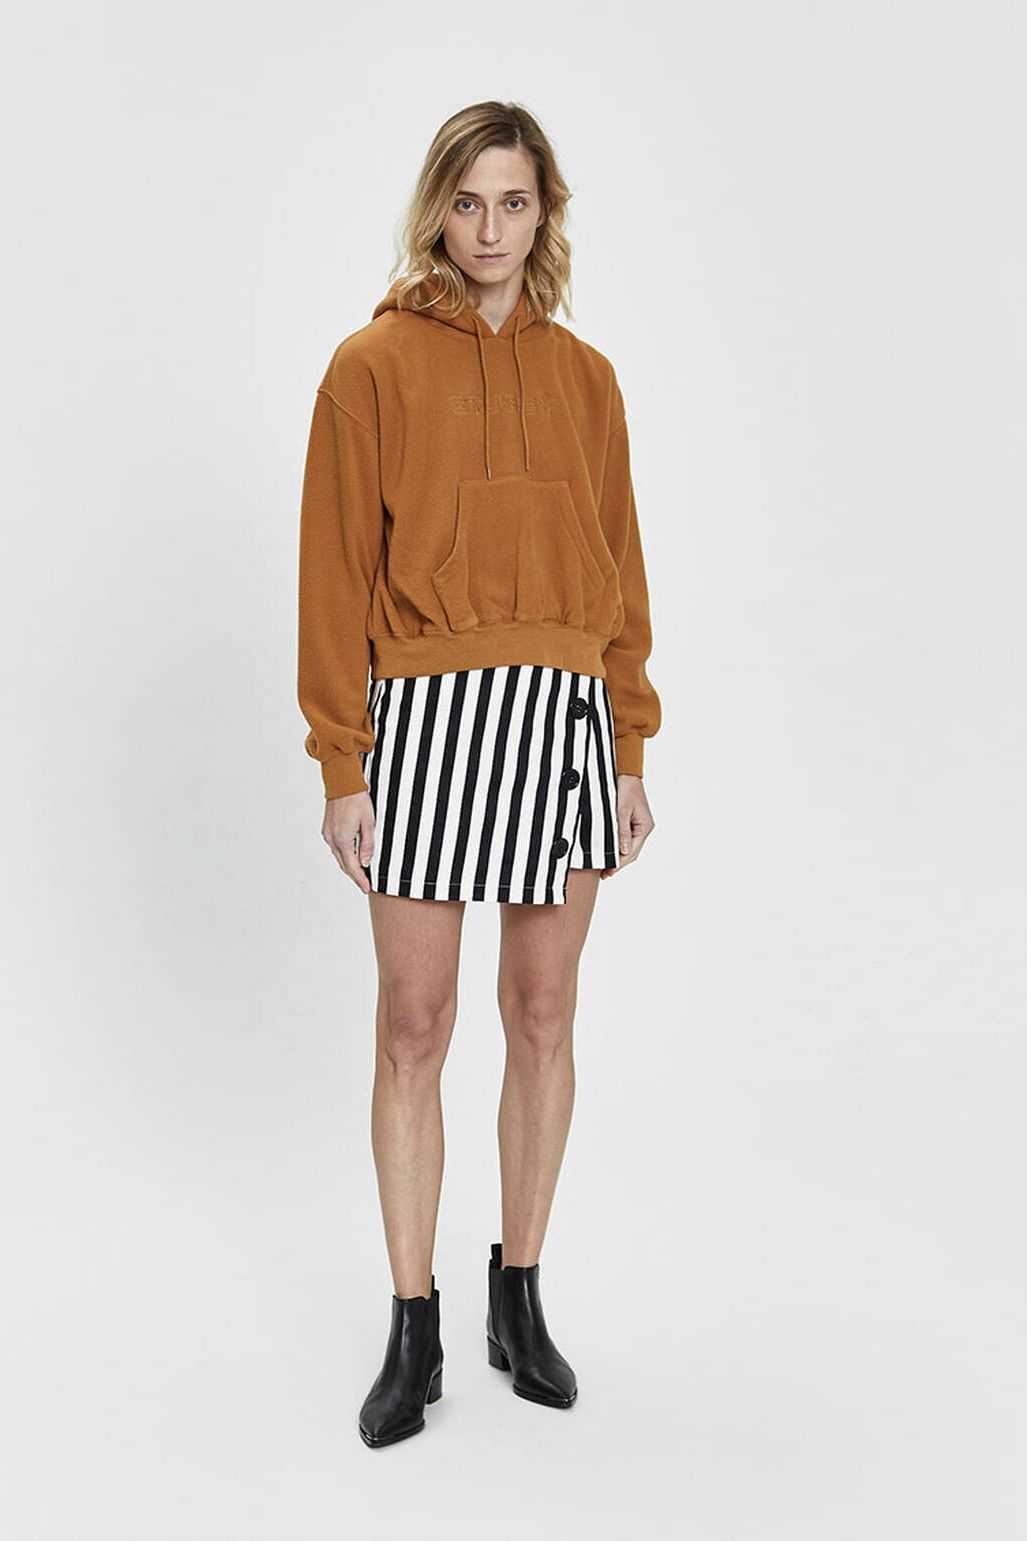 Stelen Abi Bold Stripe Mini Skirt